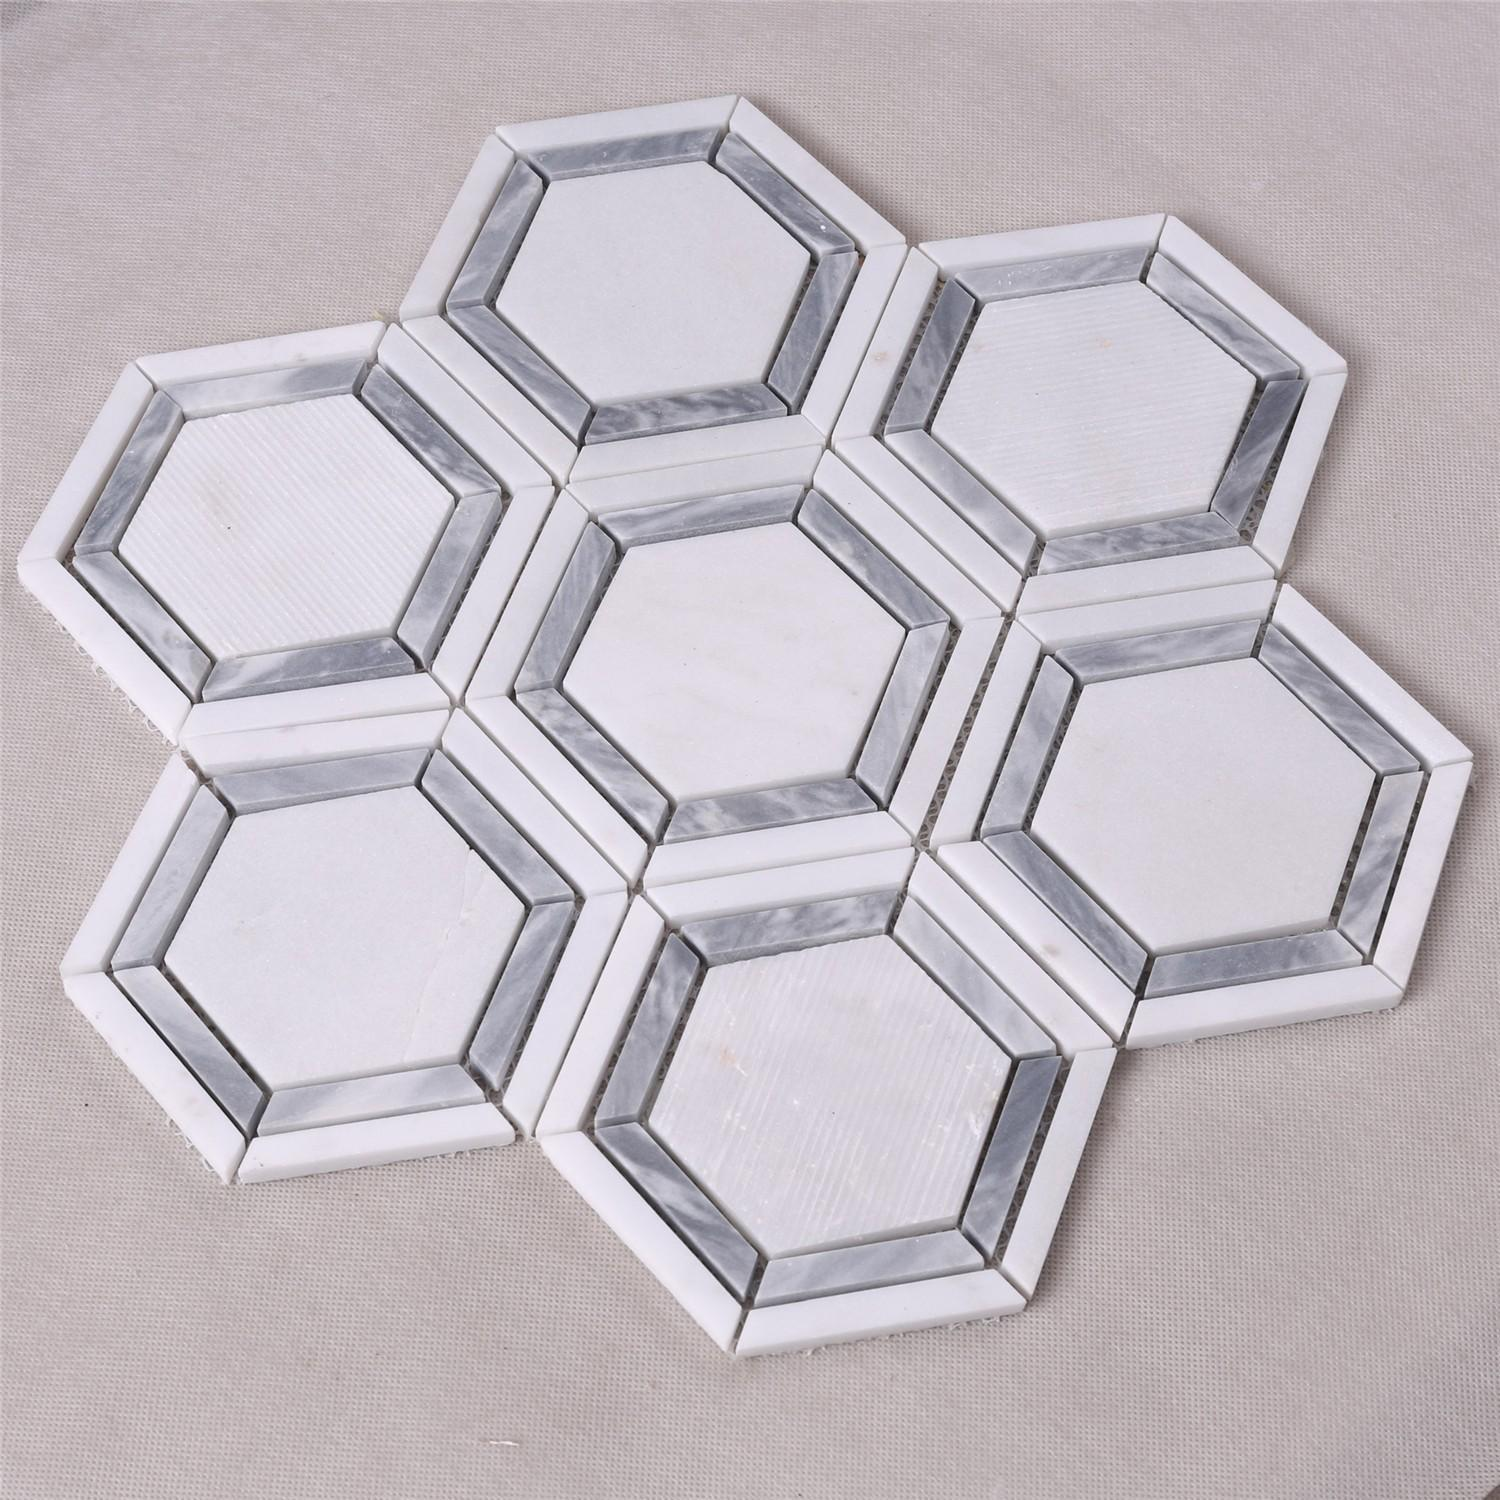 reliable crystal glass mosaic tiles suppliers white series for villa-2